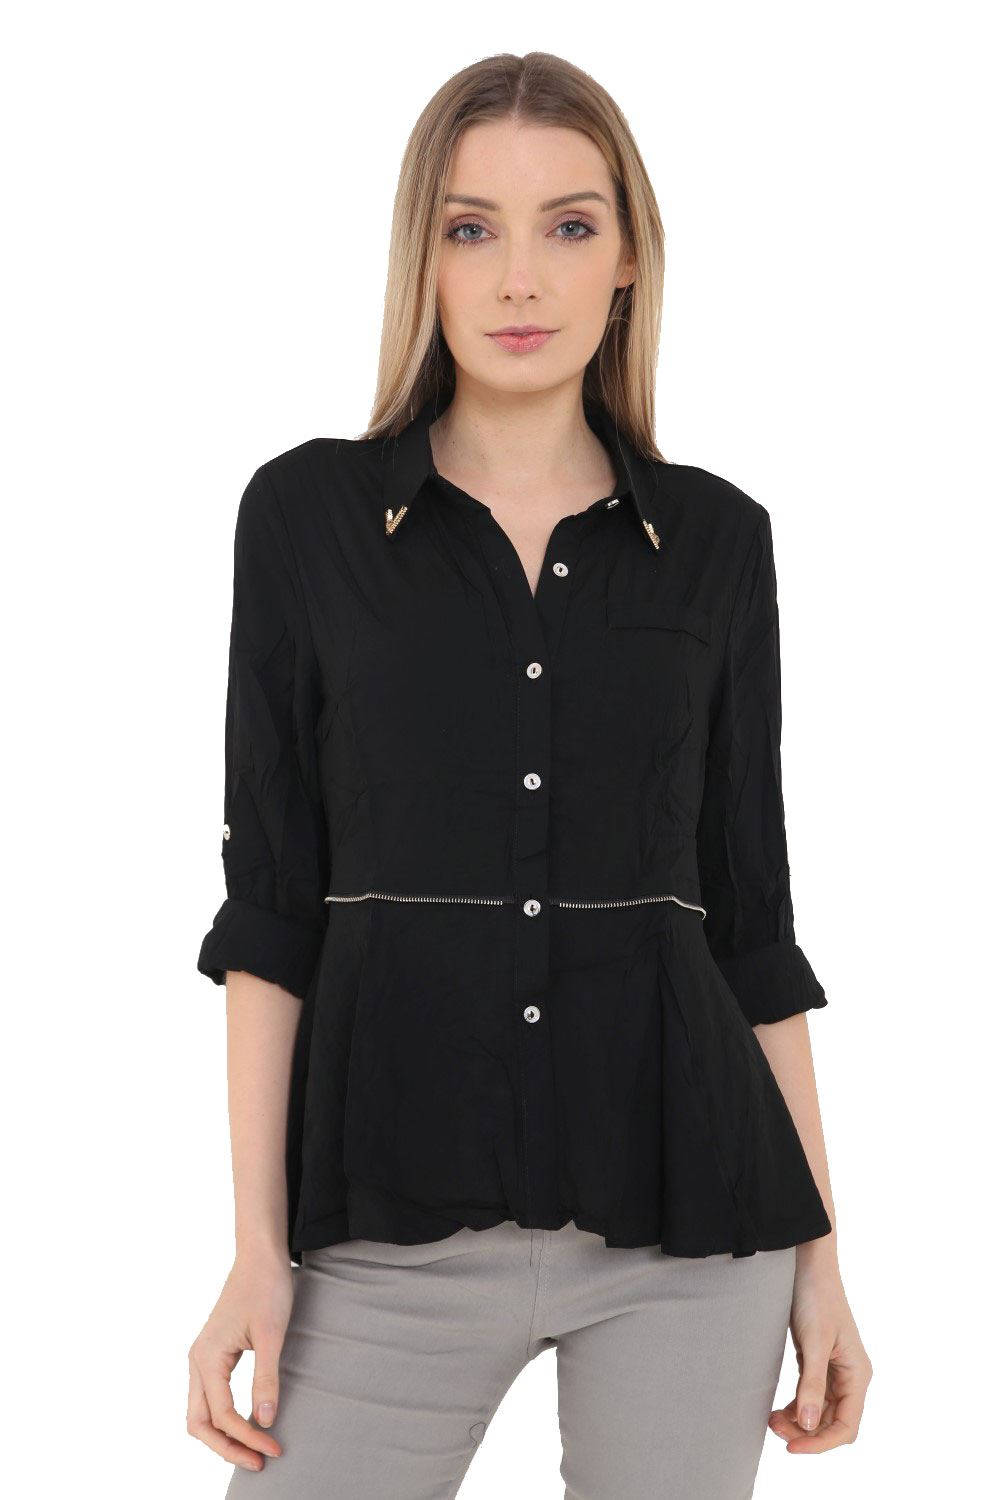 Ladies Womens 100 Cotton Shirt Top Work Office Collared